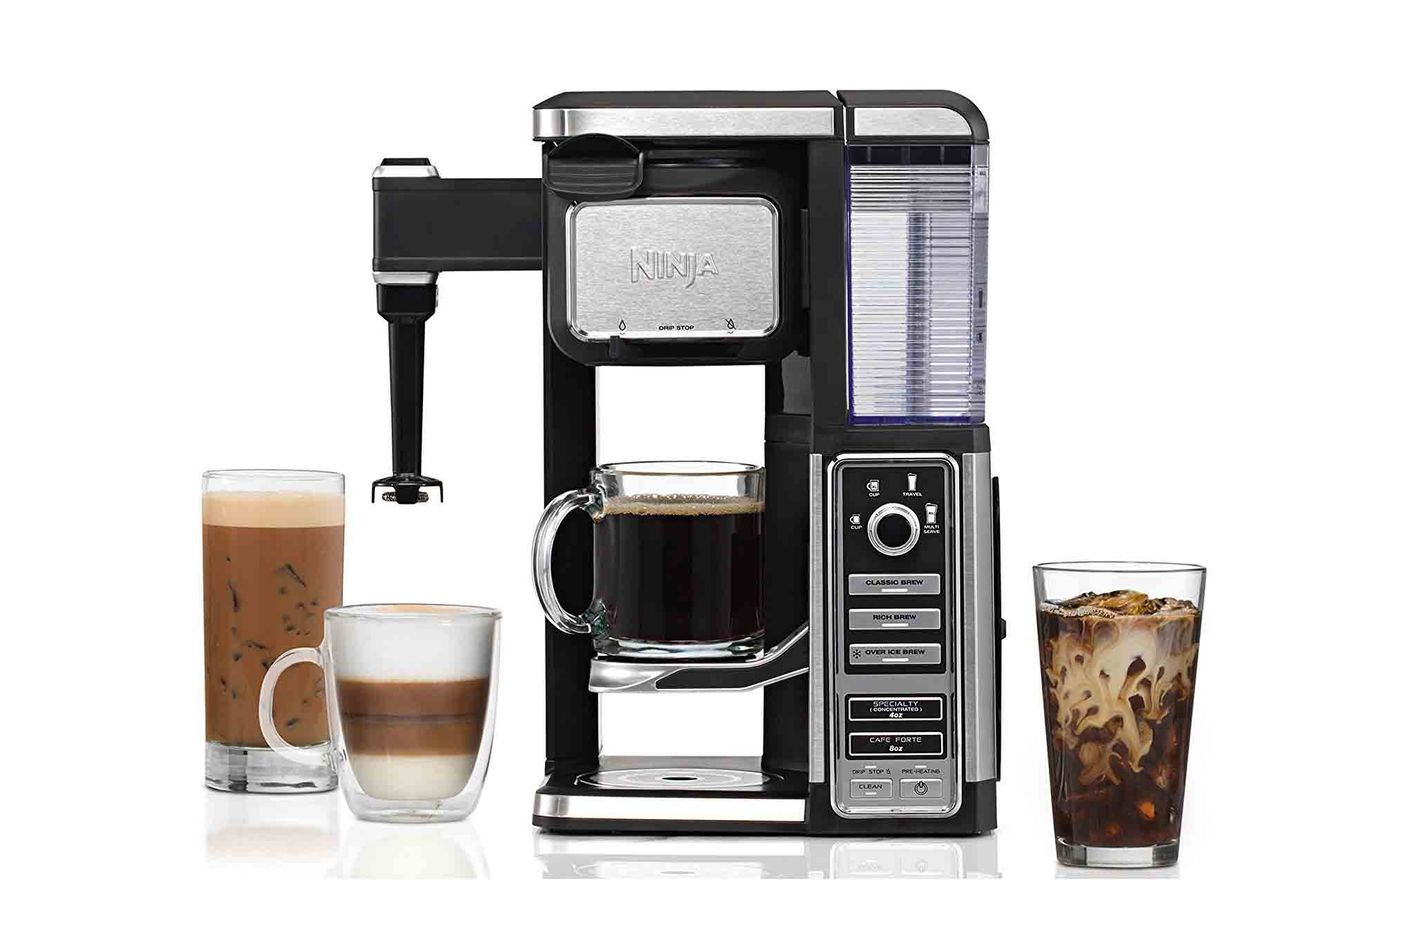 Ninja Coffee Bar Single-Serve System With Built-in Frother